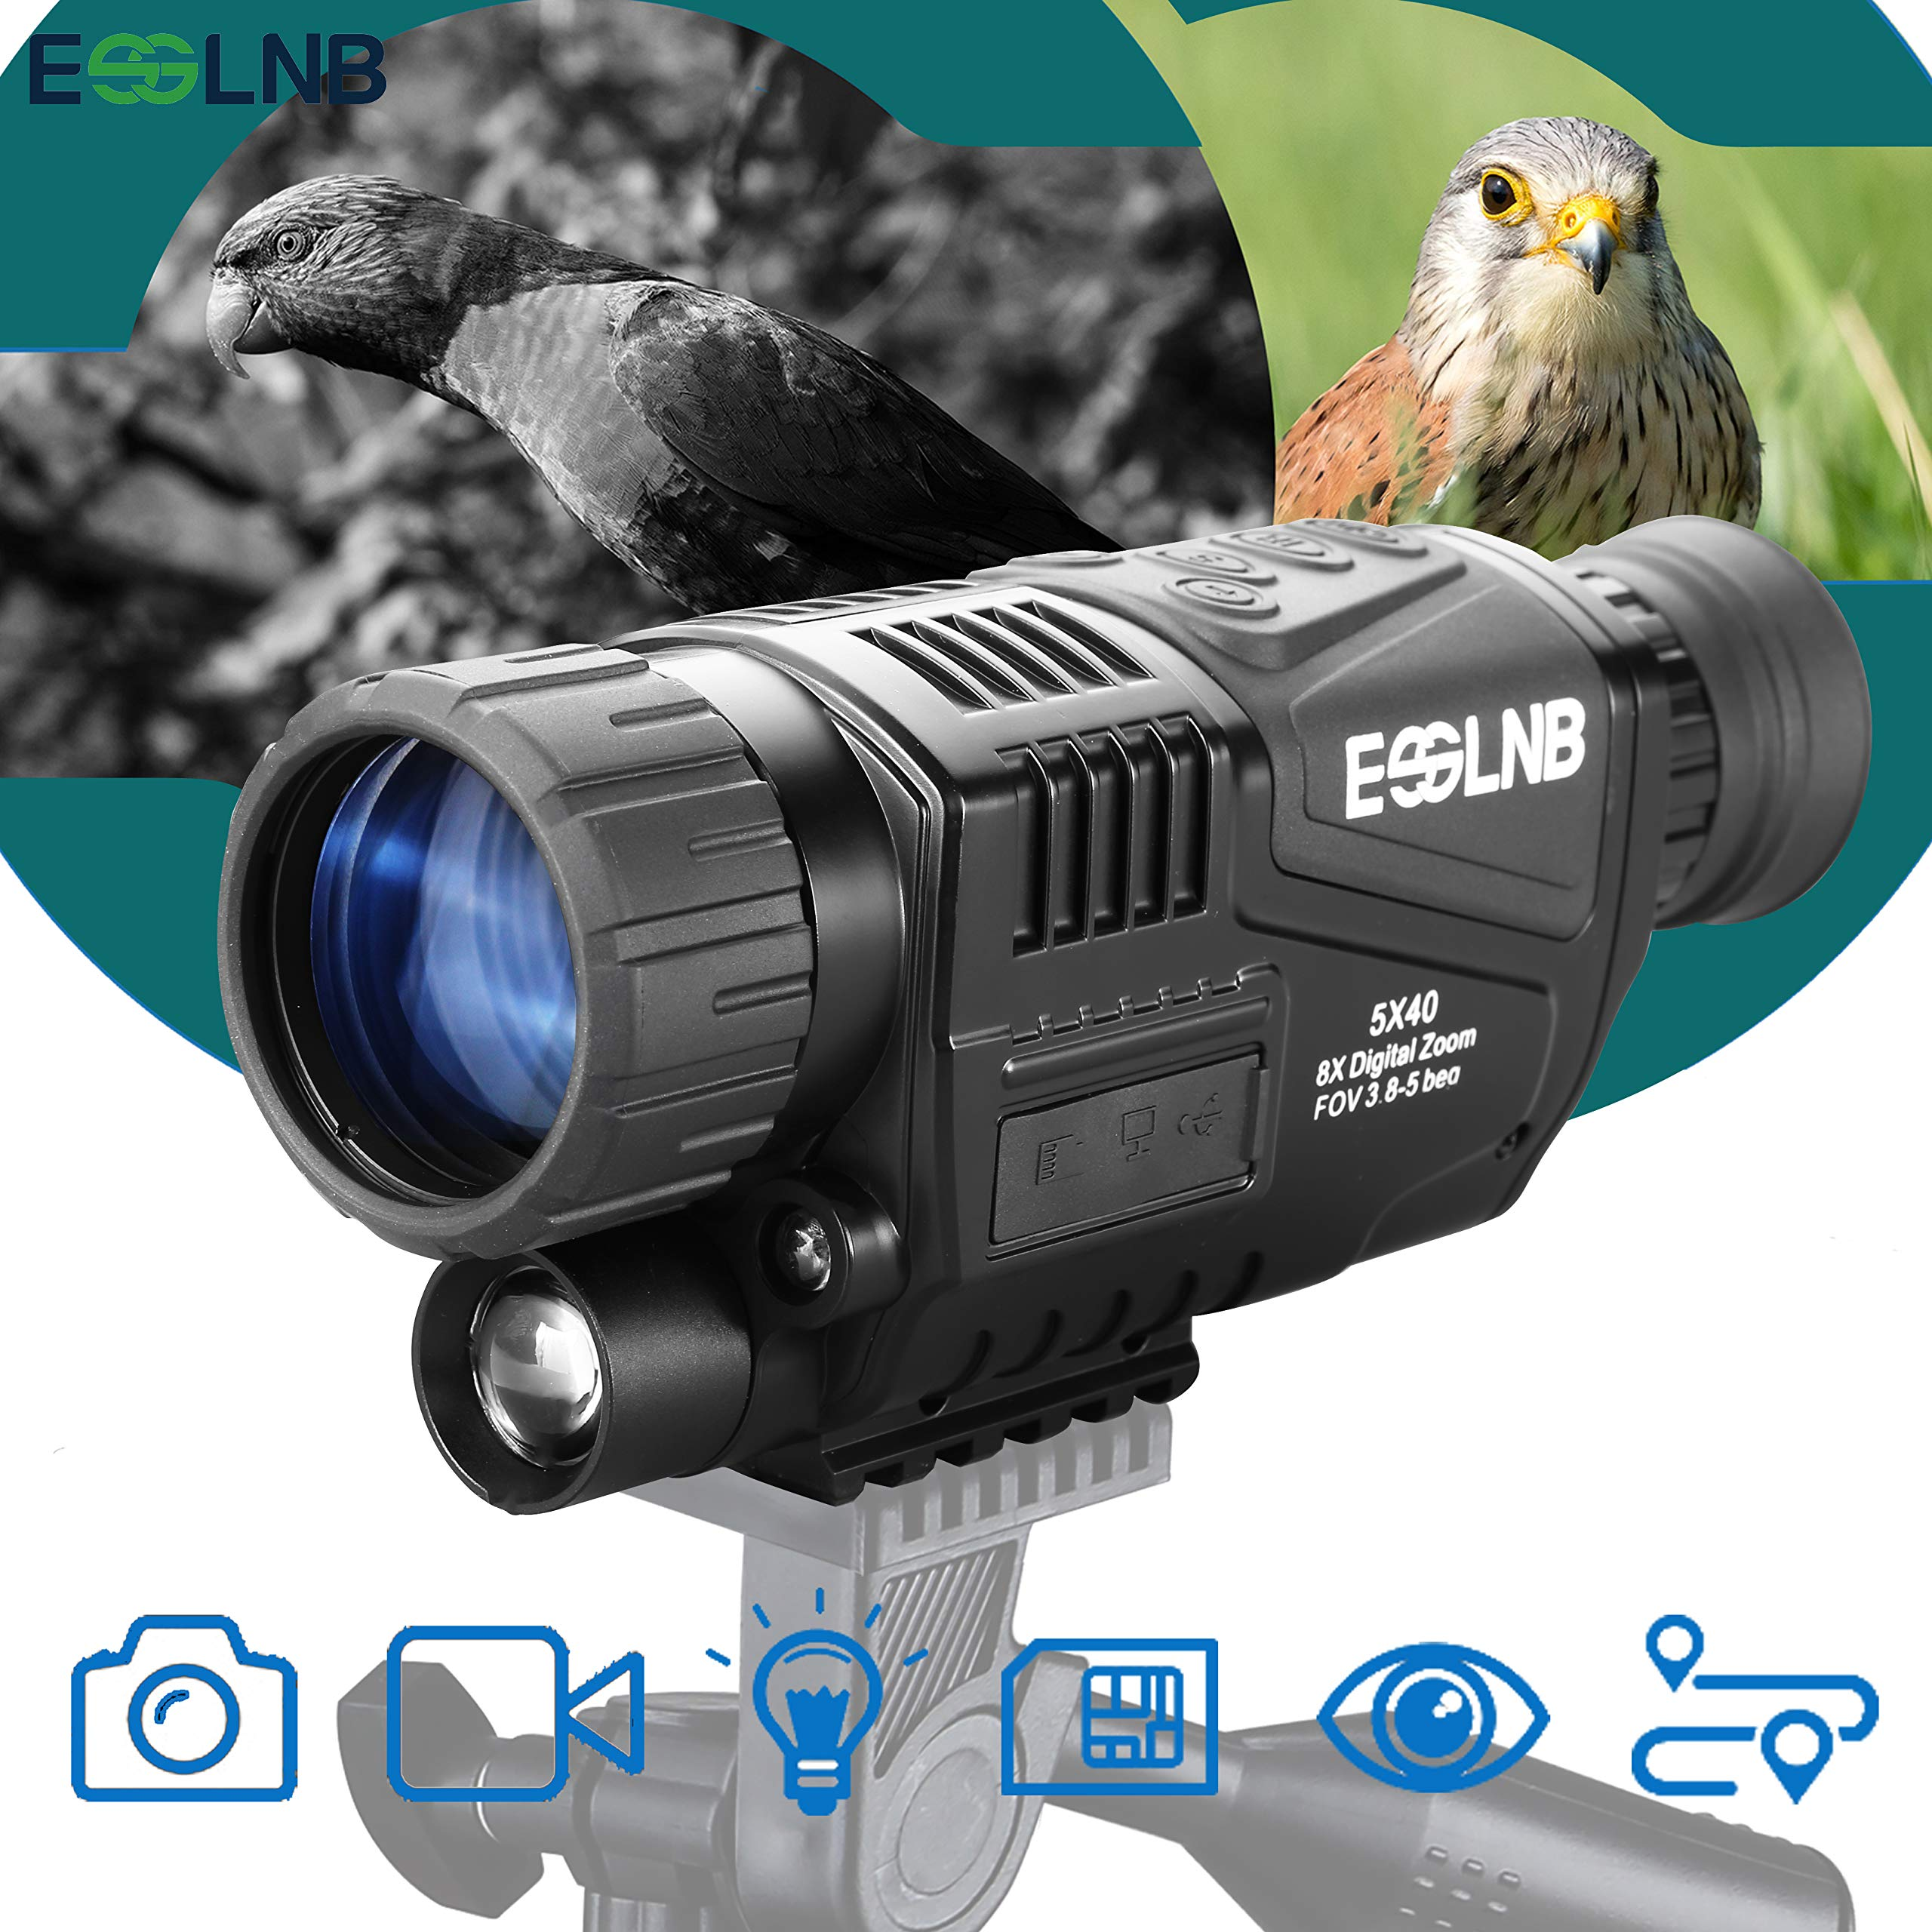 ESSLNB Night Vision Monocular 5X40 Night Vision Infrared Scope HD Digital Vision Scope Take Photos and Video Playback 1.5'' LCD with TF Card for Hunting Security Surveilla